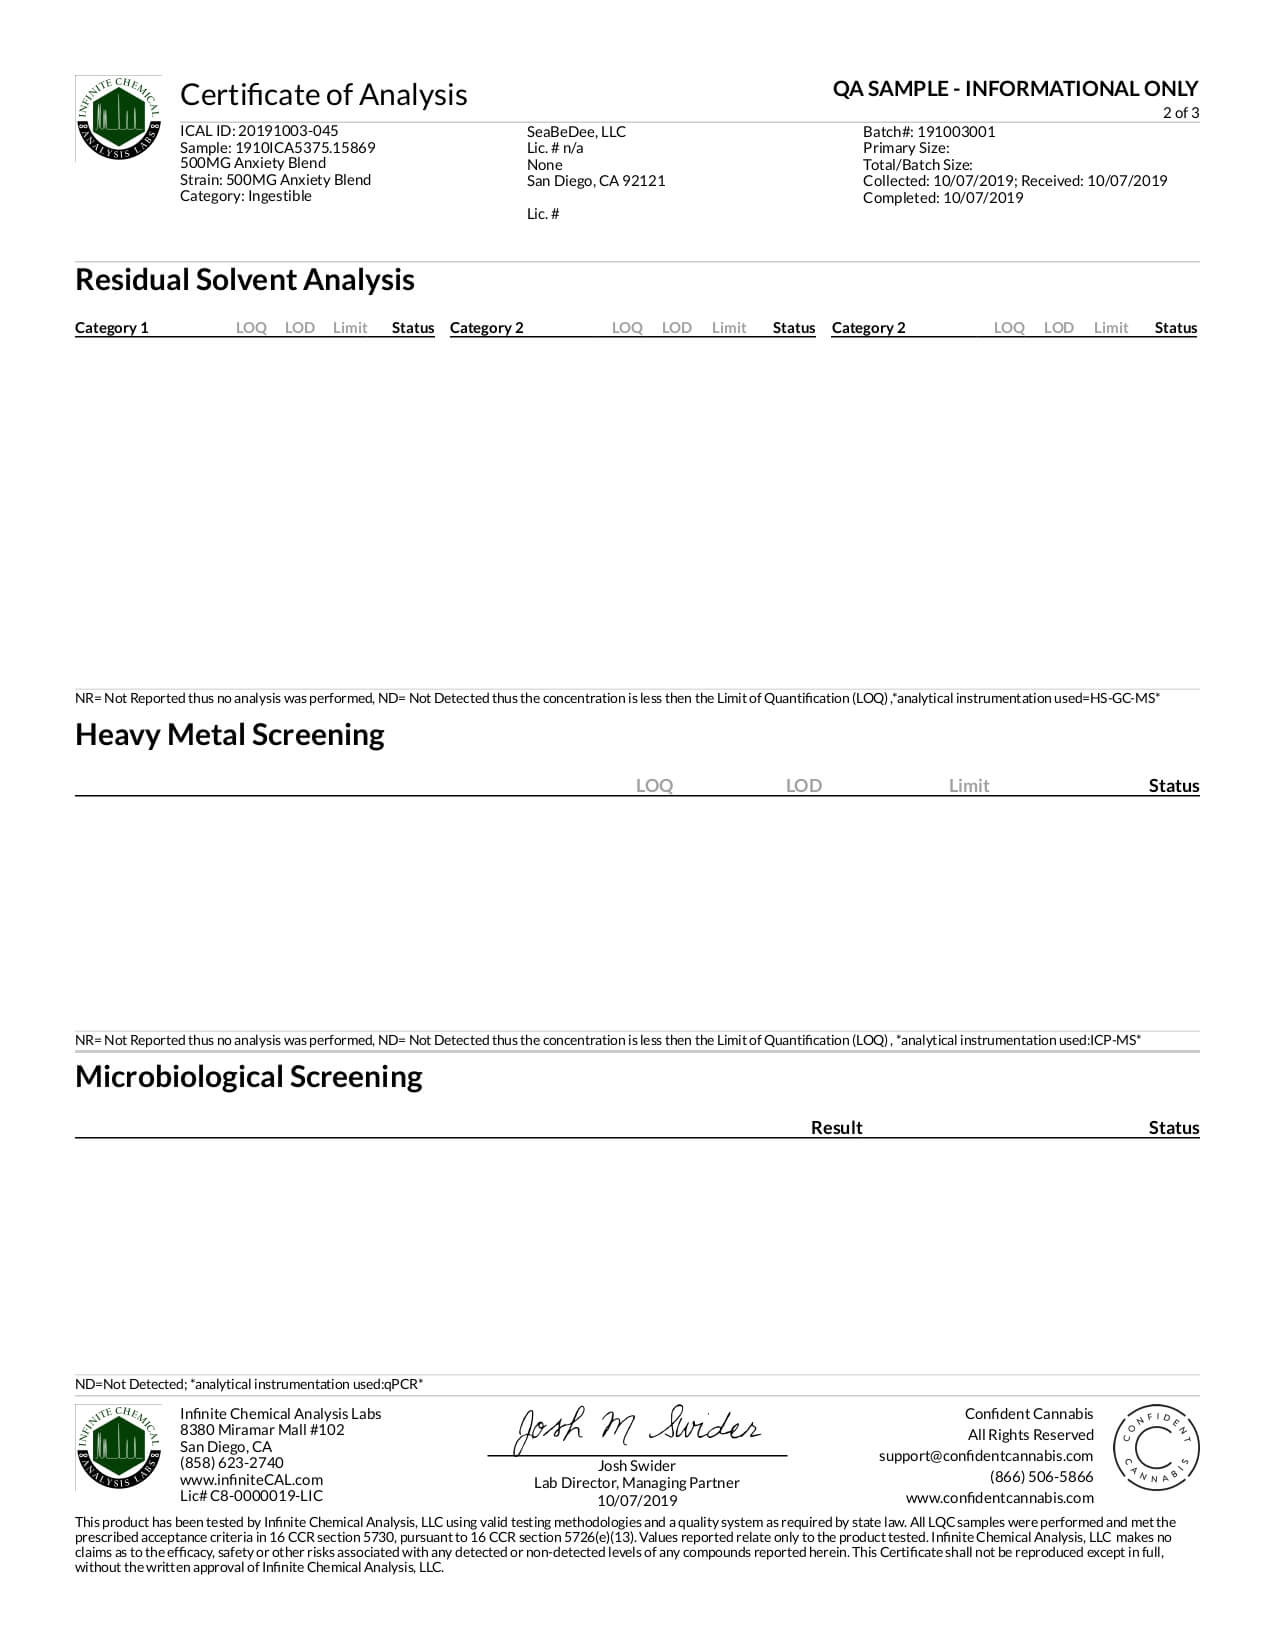 Seabedee CBD Tincture Anxiety Blend 500mg Lab Report